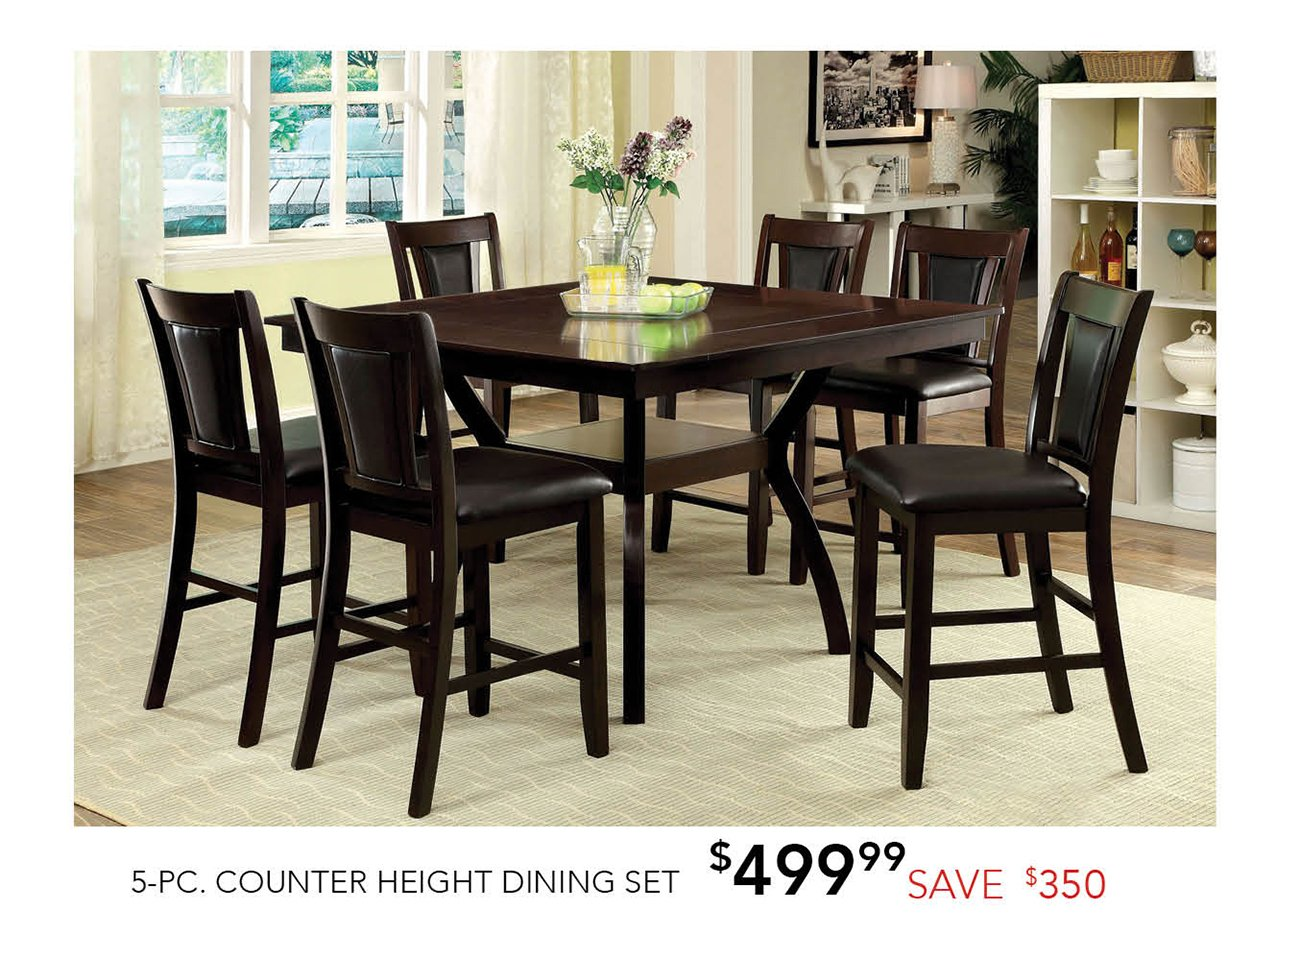 Counter-height-dining-set